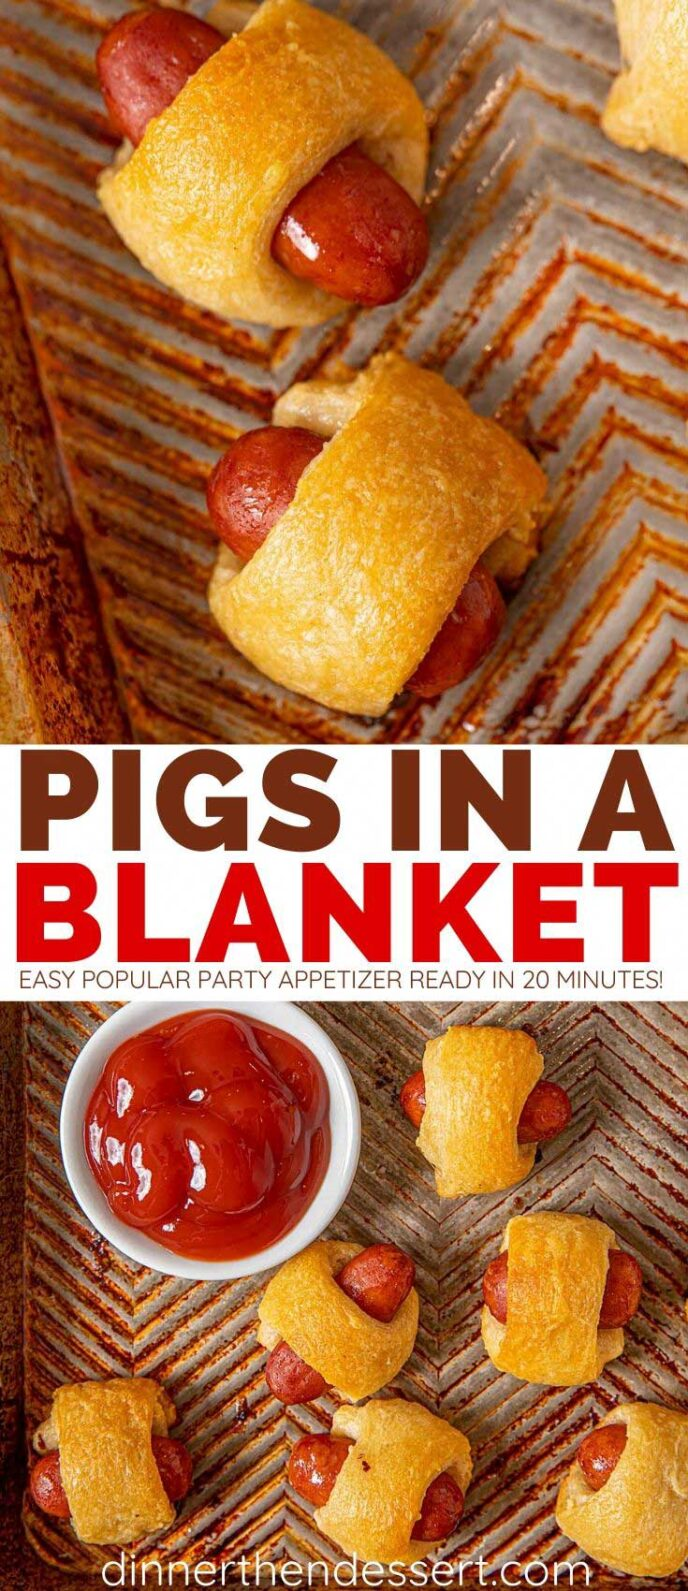 Collage Images of Pigs in a Blanket